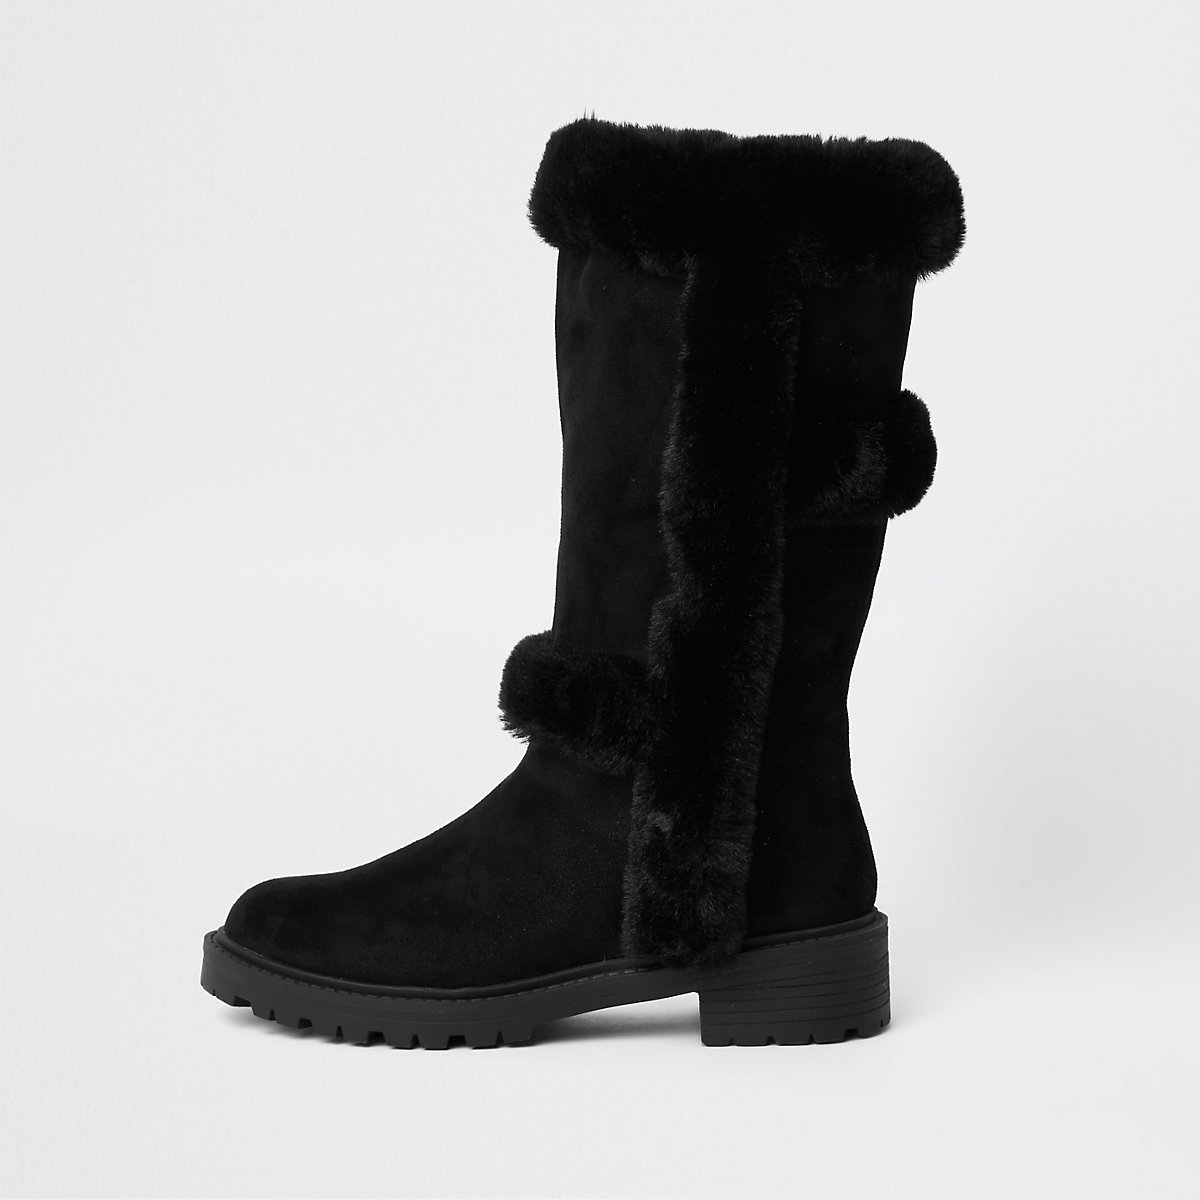 Black faux fur lined knee high boots